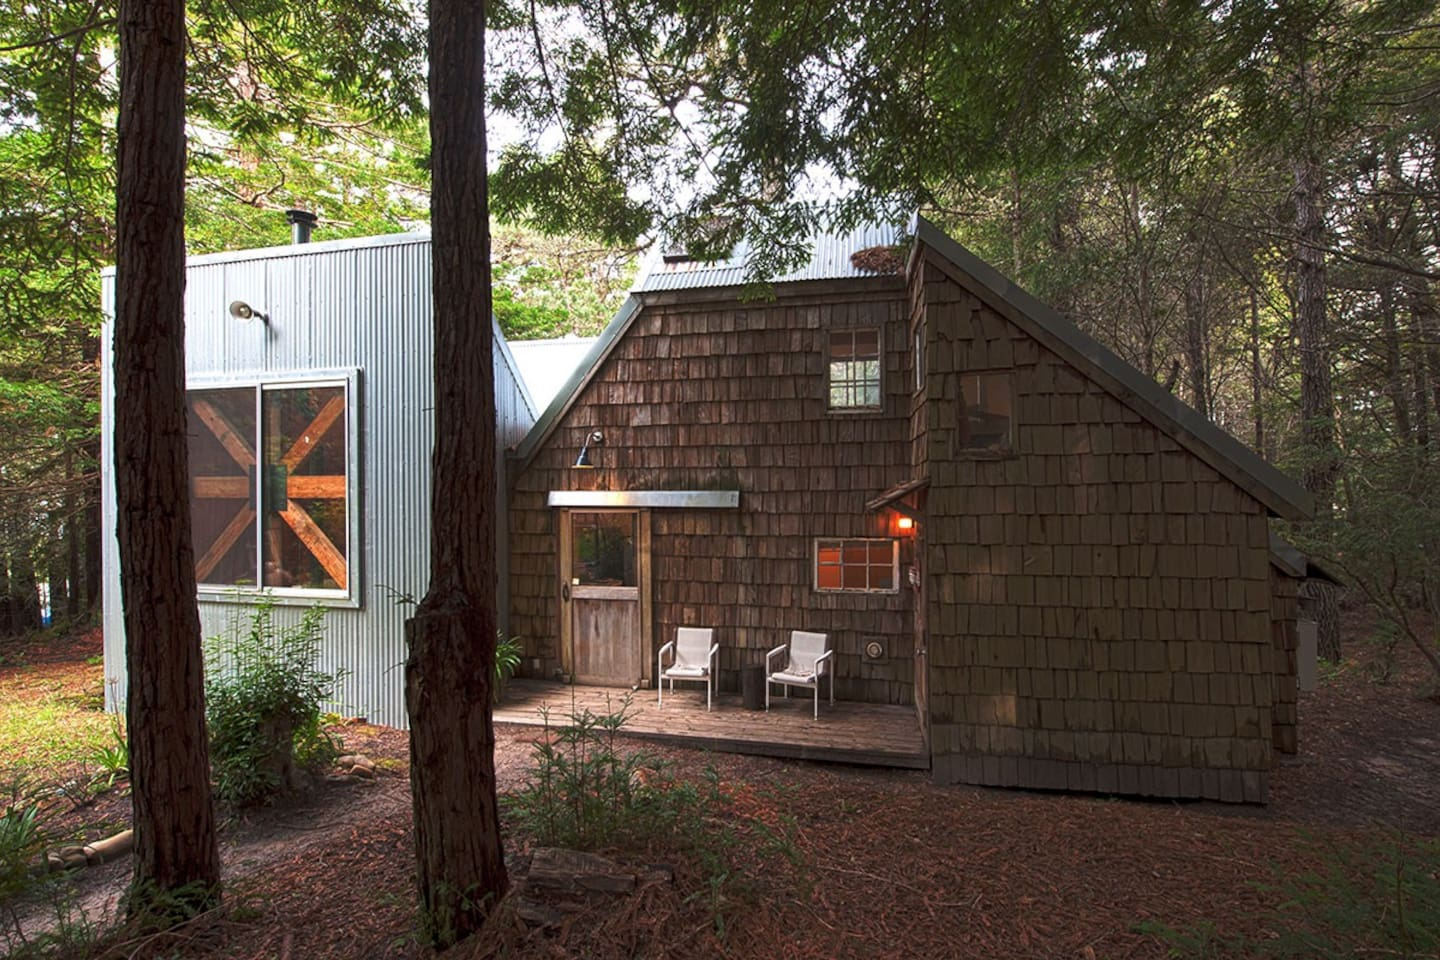 Front view of guesthouse in the redwoods